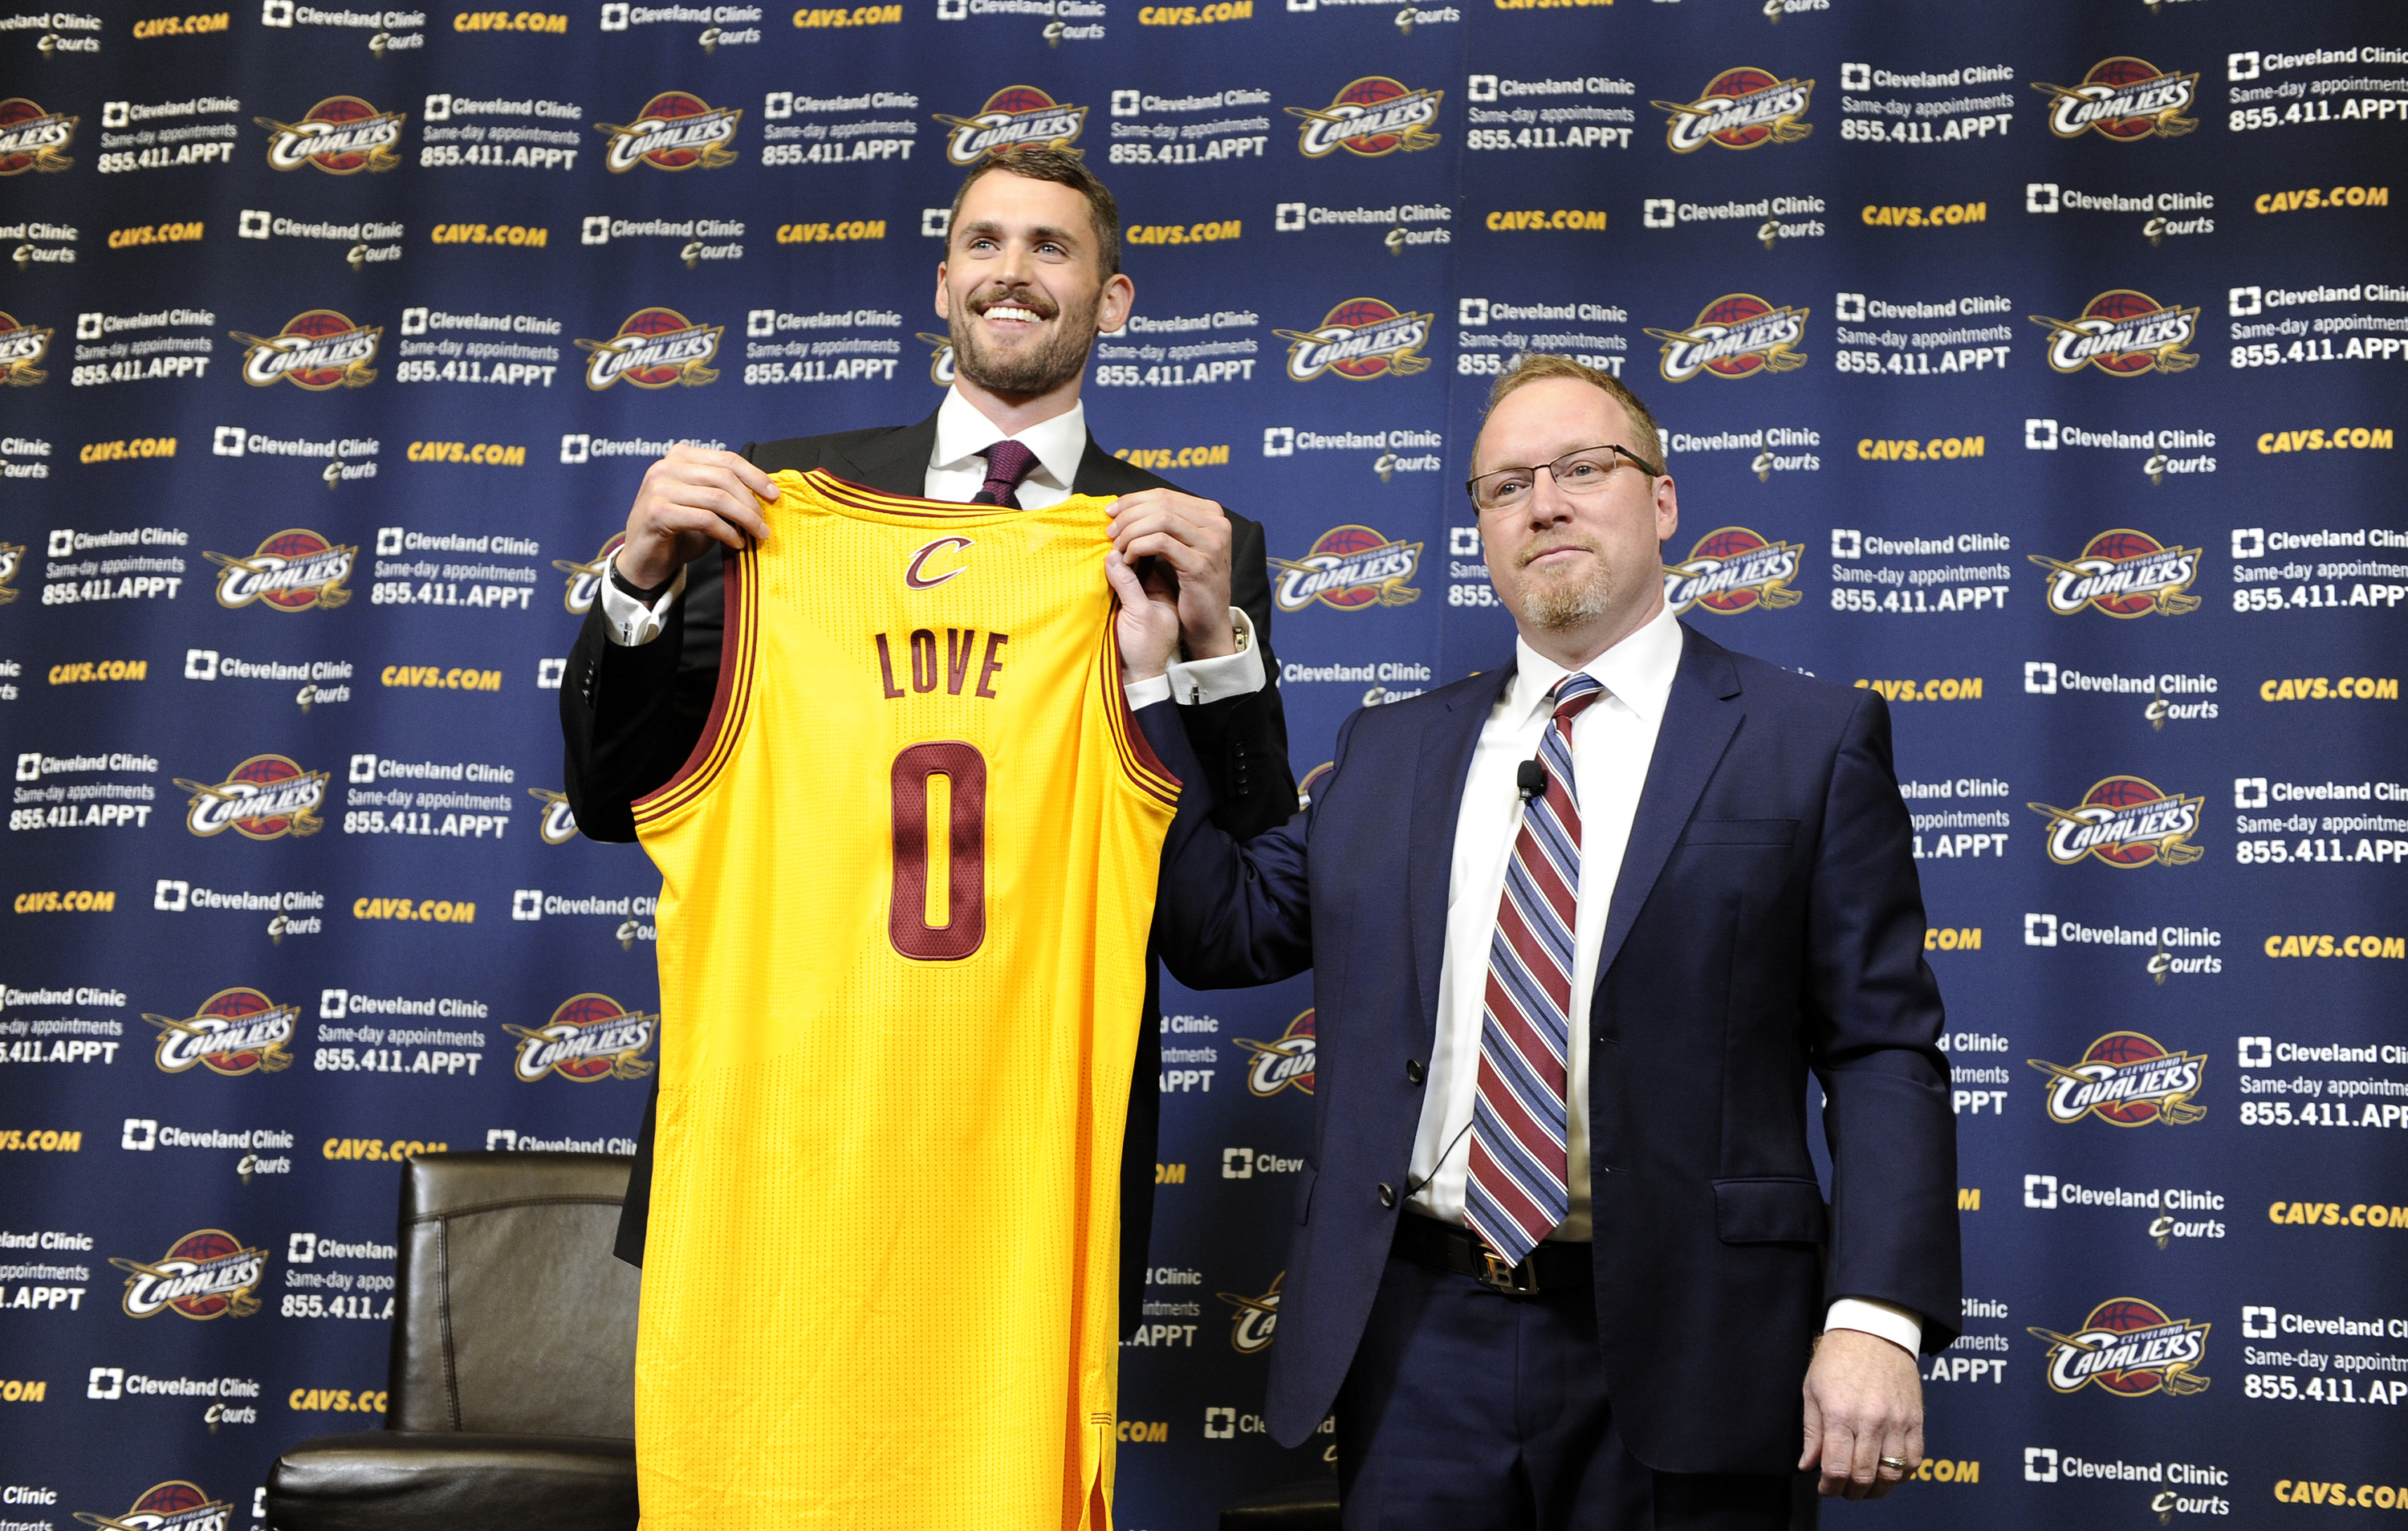 Kevin Love David Griffin